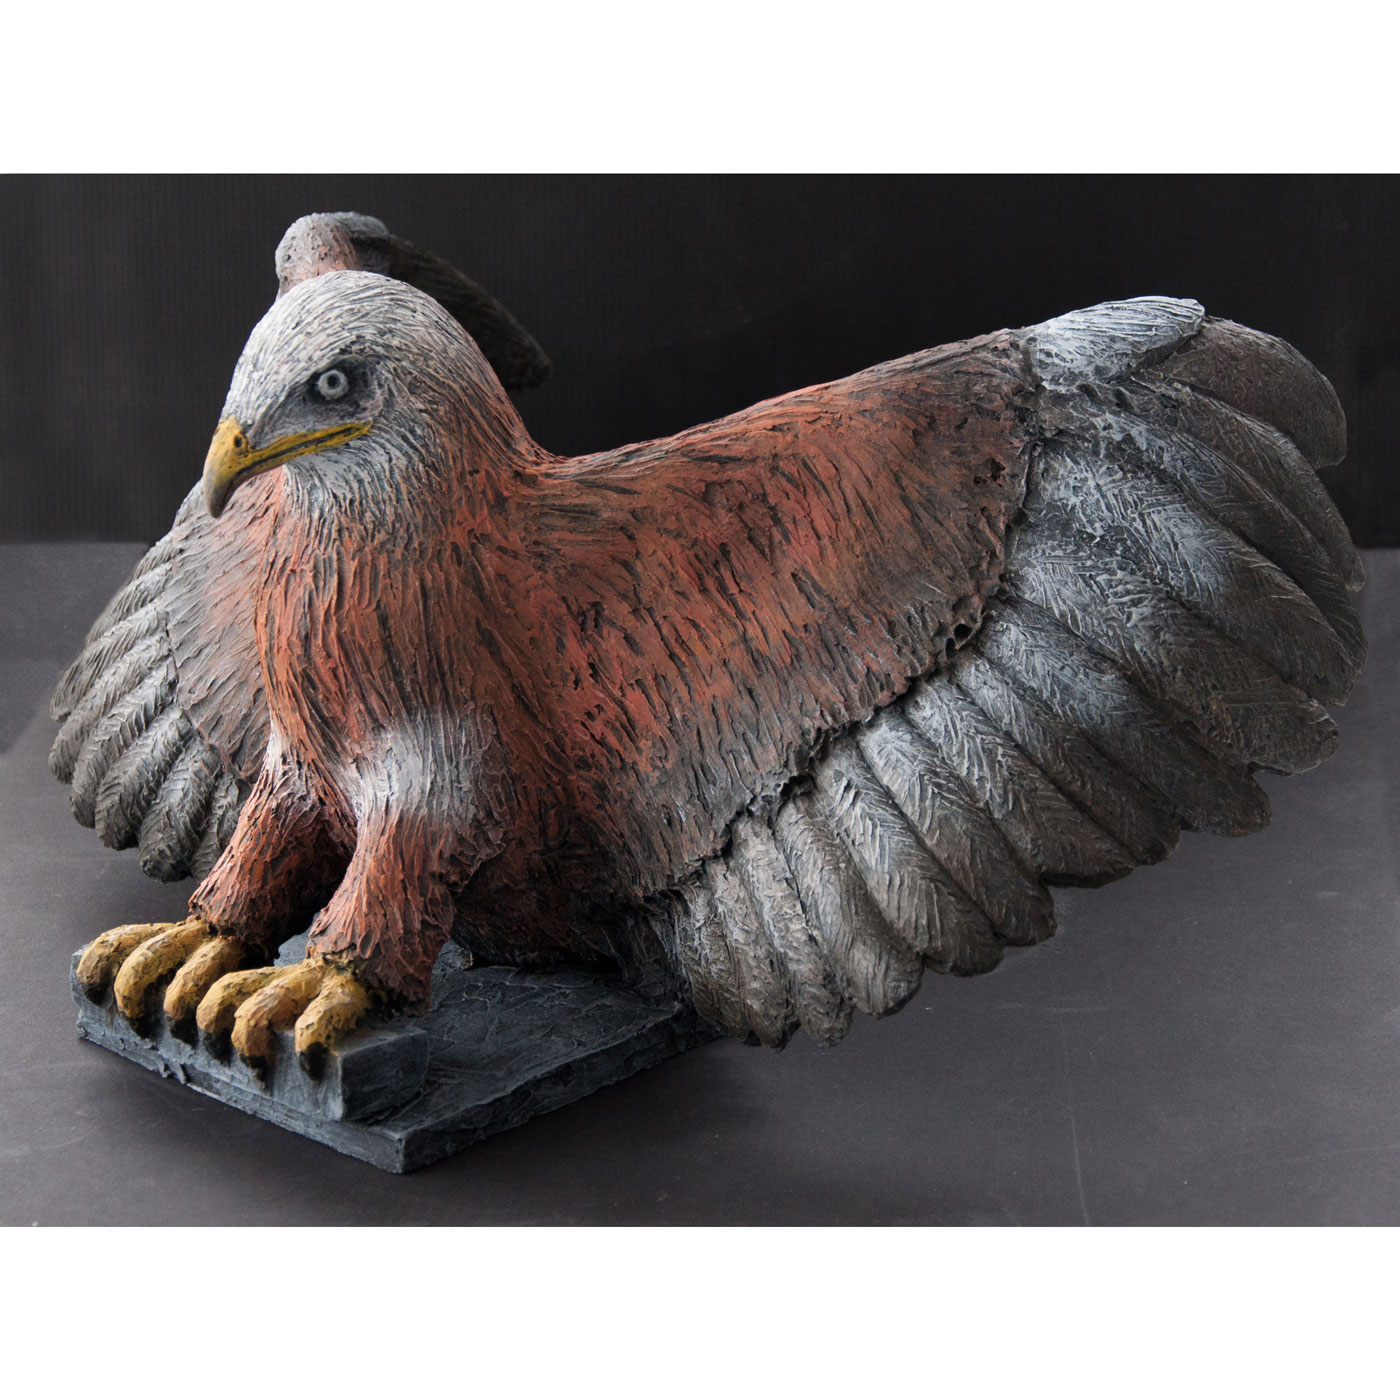 RED KITE,  © 2014, acrylic cast, molded in wax, 50 x 35 x 30 cm